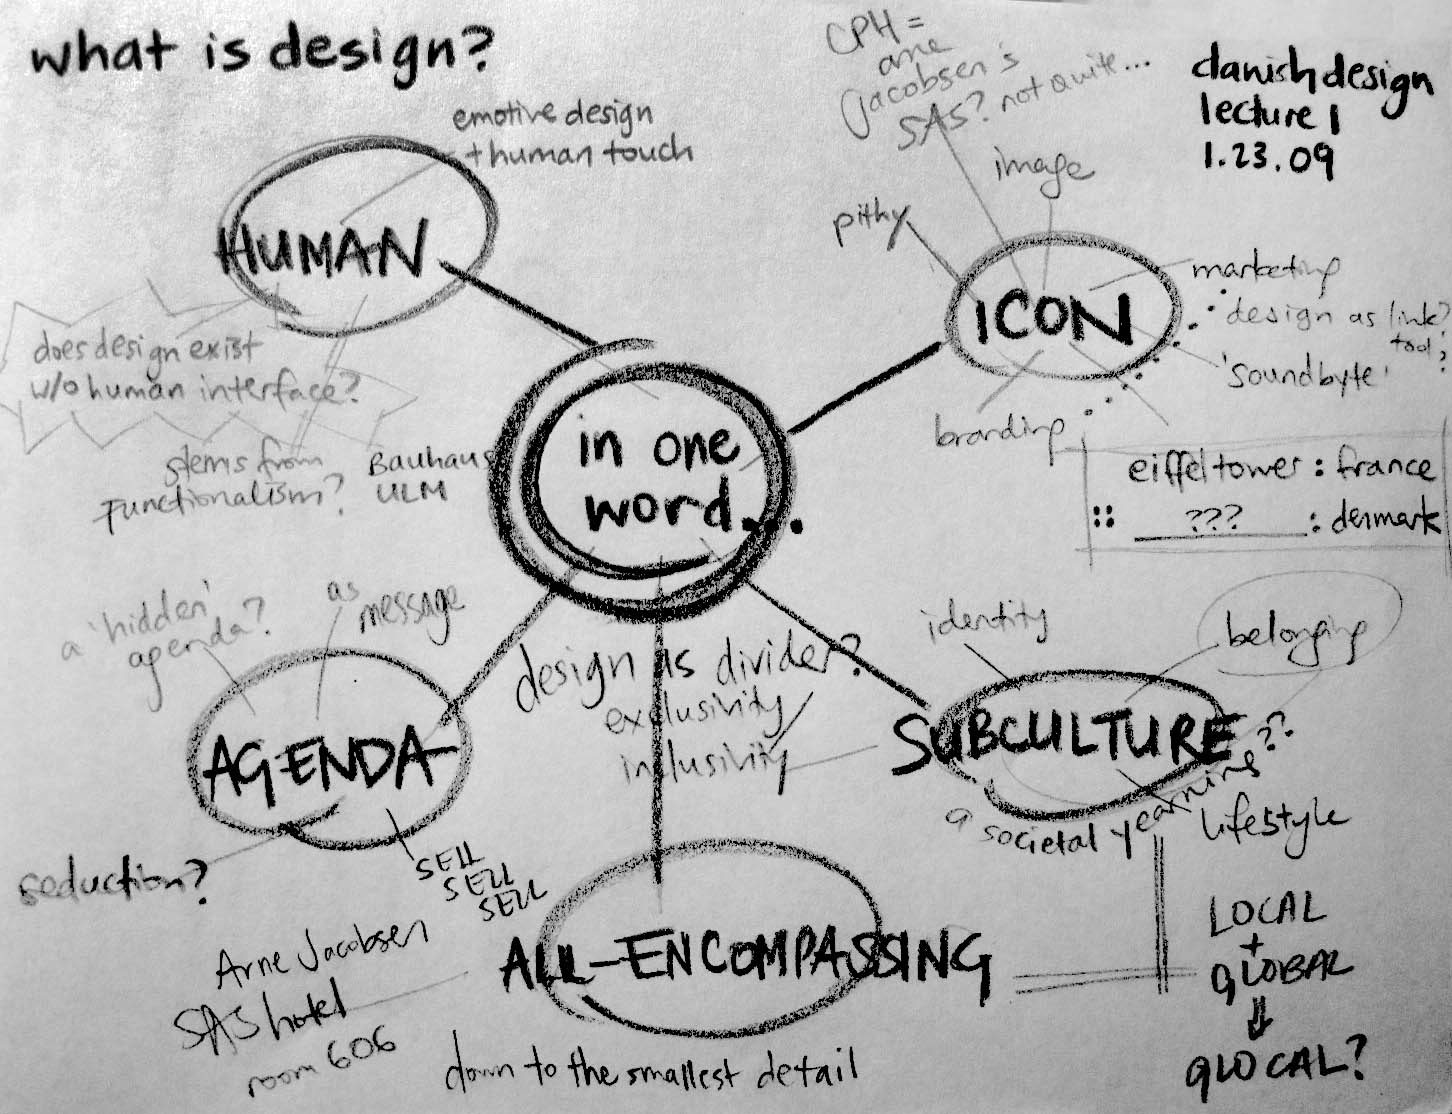 what-is-design-lecture14